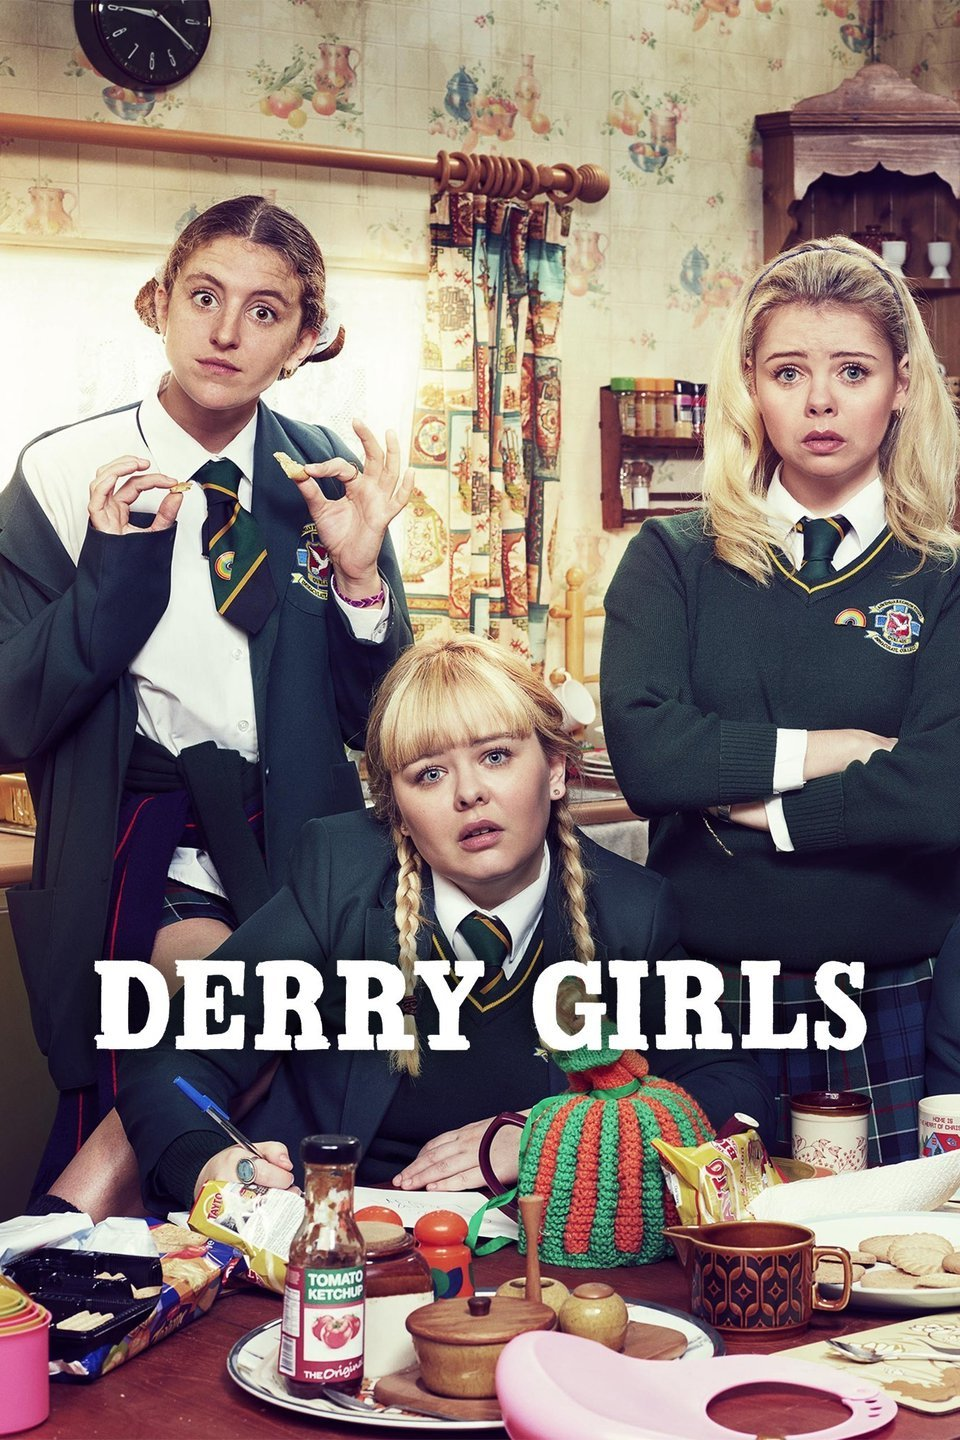 Derry Girls - Another HILARIOUS show following five Irish-catholic high schoolers navigating a civil war and adolescence in the 80's. This show is probably my favourite thing on Netflix at the moment (I've watched it twice already). It's crass yet incredibly endearing. You may need the subtitles if your Irish isn't quite up to speed, but OH MY, is it ever funny.